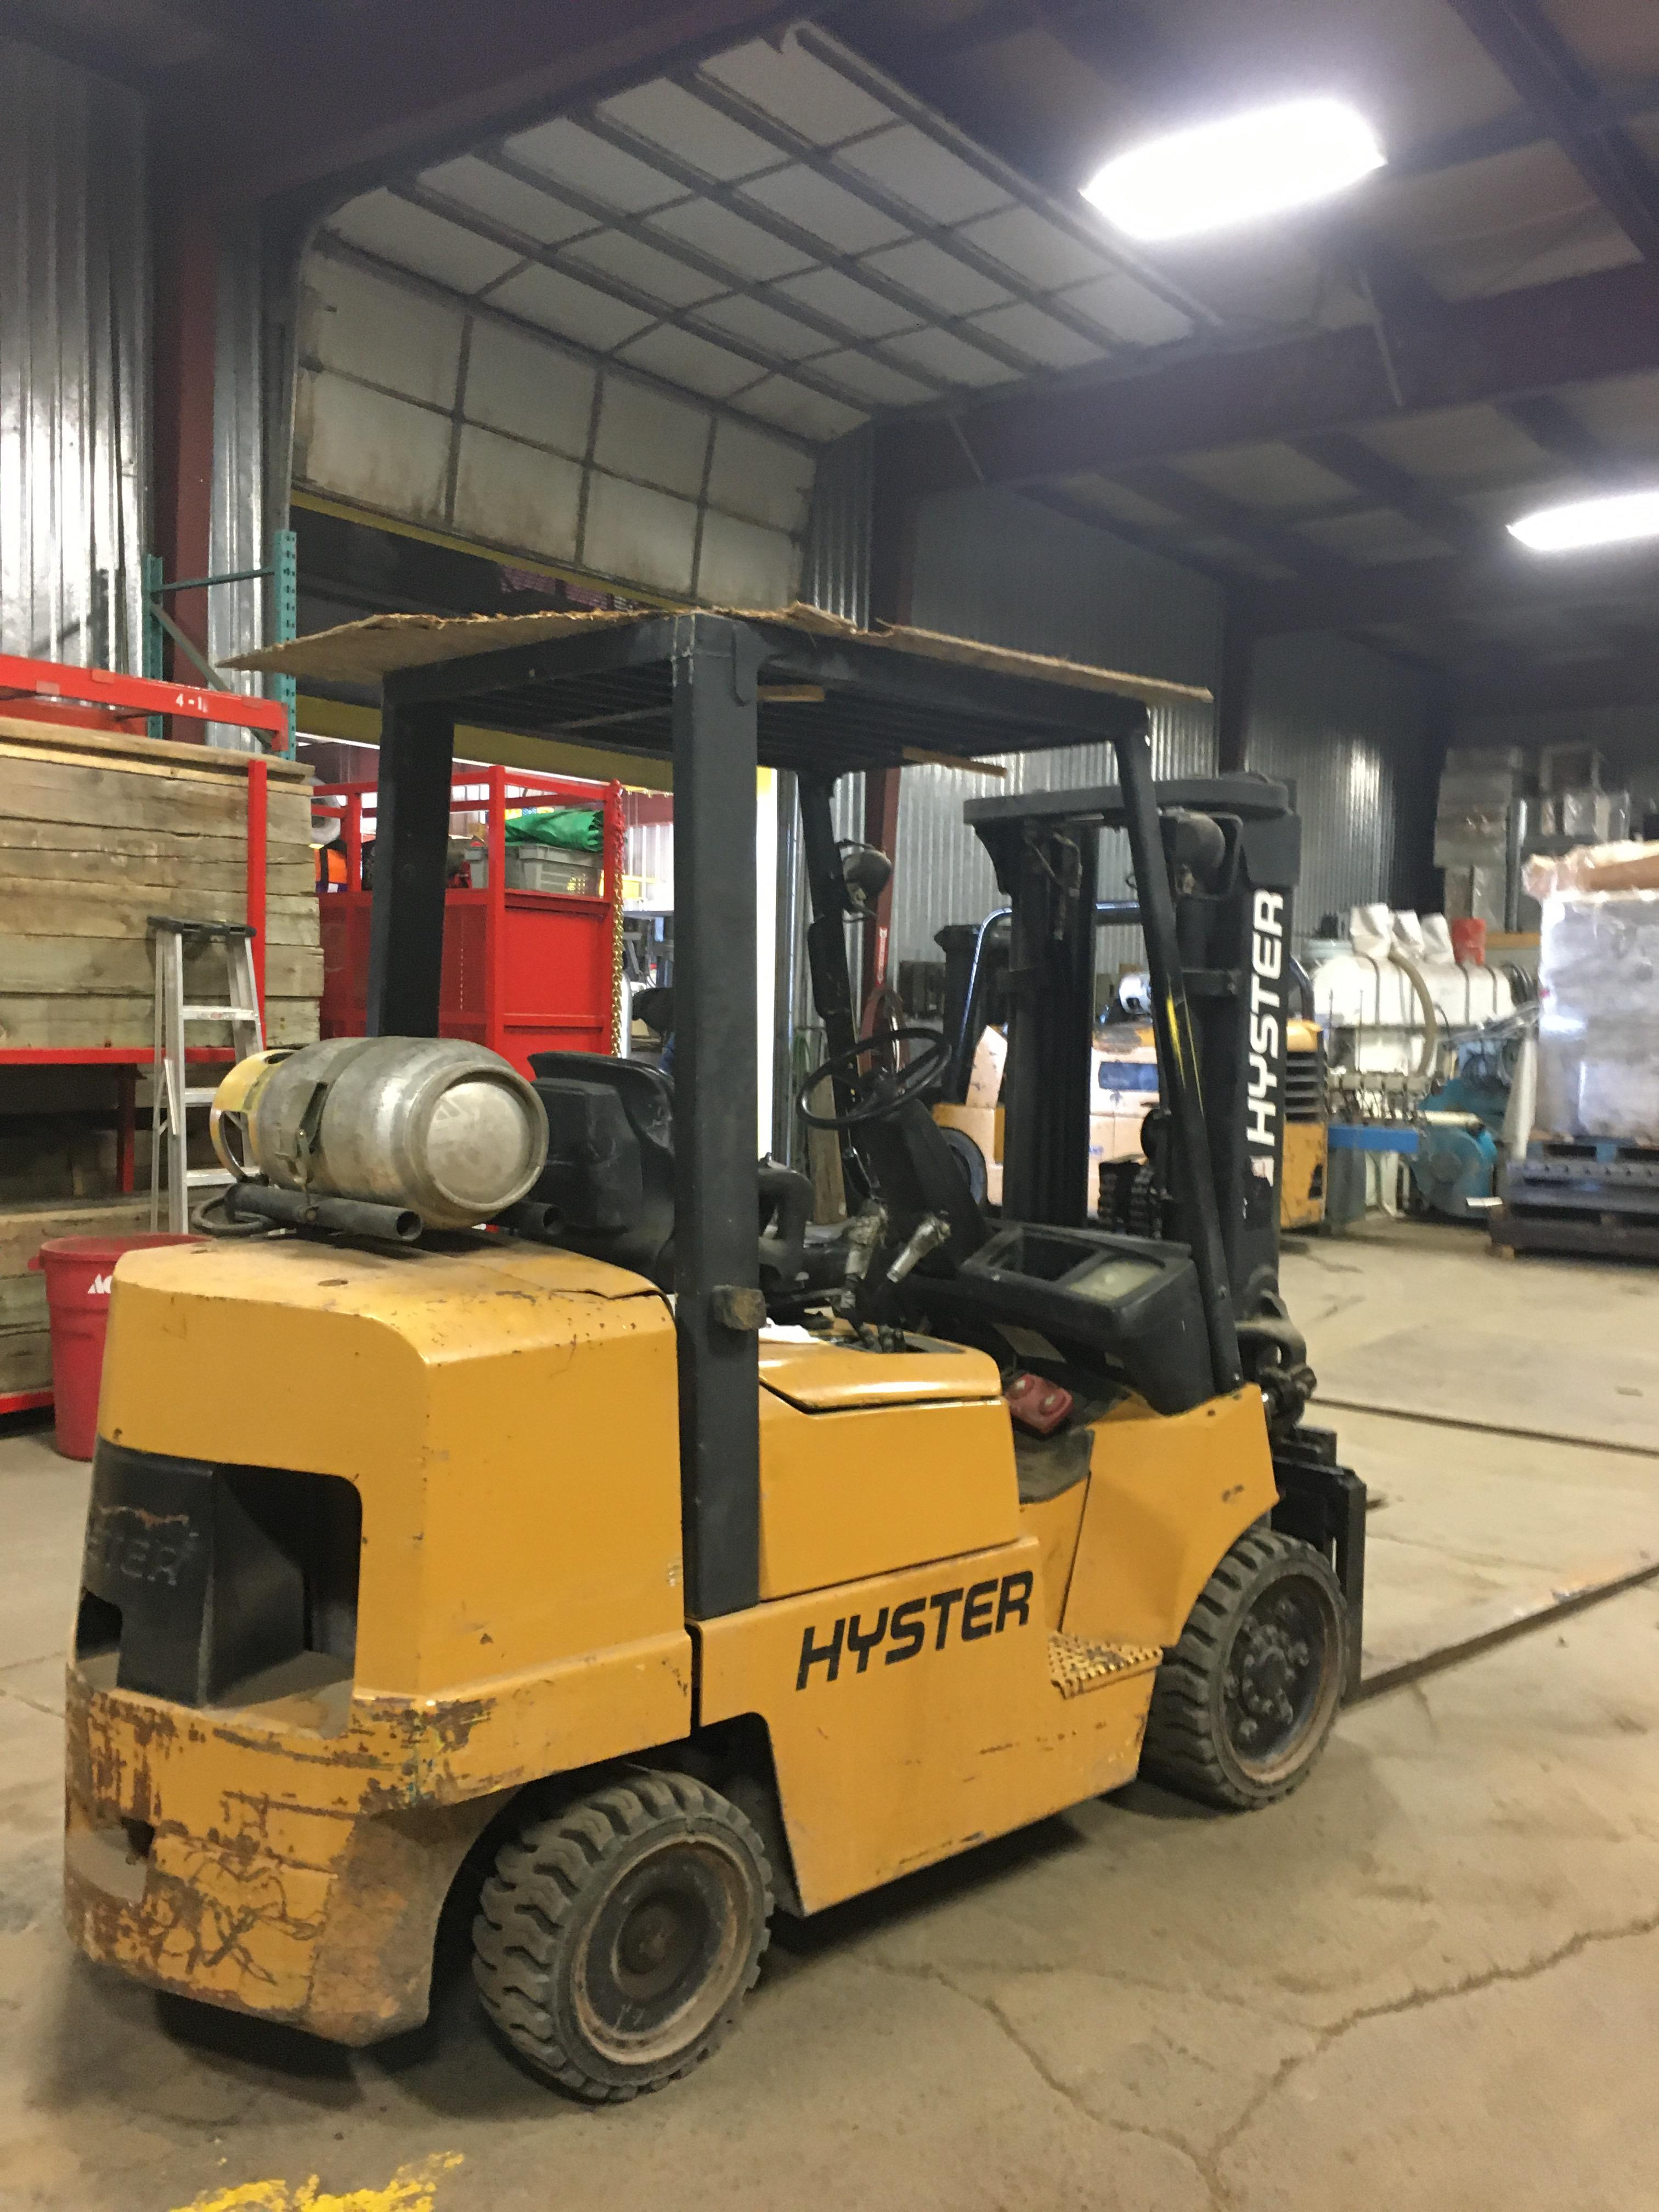 HYSTER PROPANE FORKLIFT, 8000 LBS CAP. (SIDESHIFT NOT FUNCTIONAL, NEEDS A REEL AND 2 HOSES) - Image 2 of 4